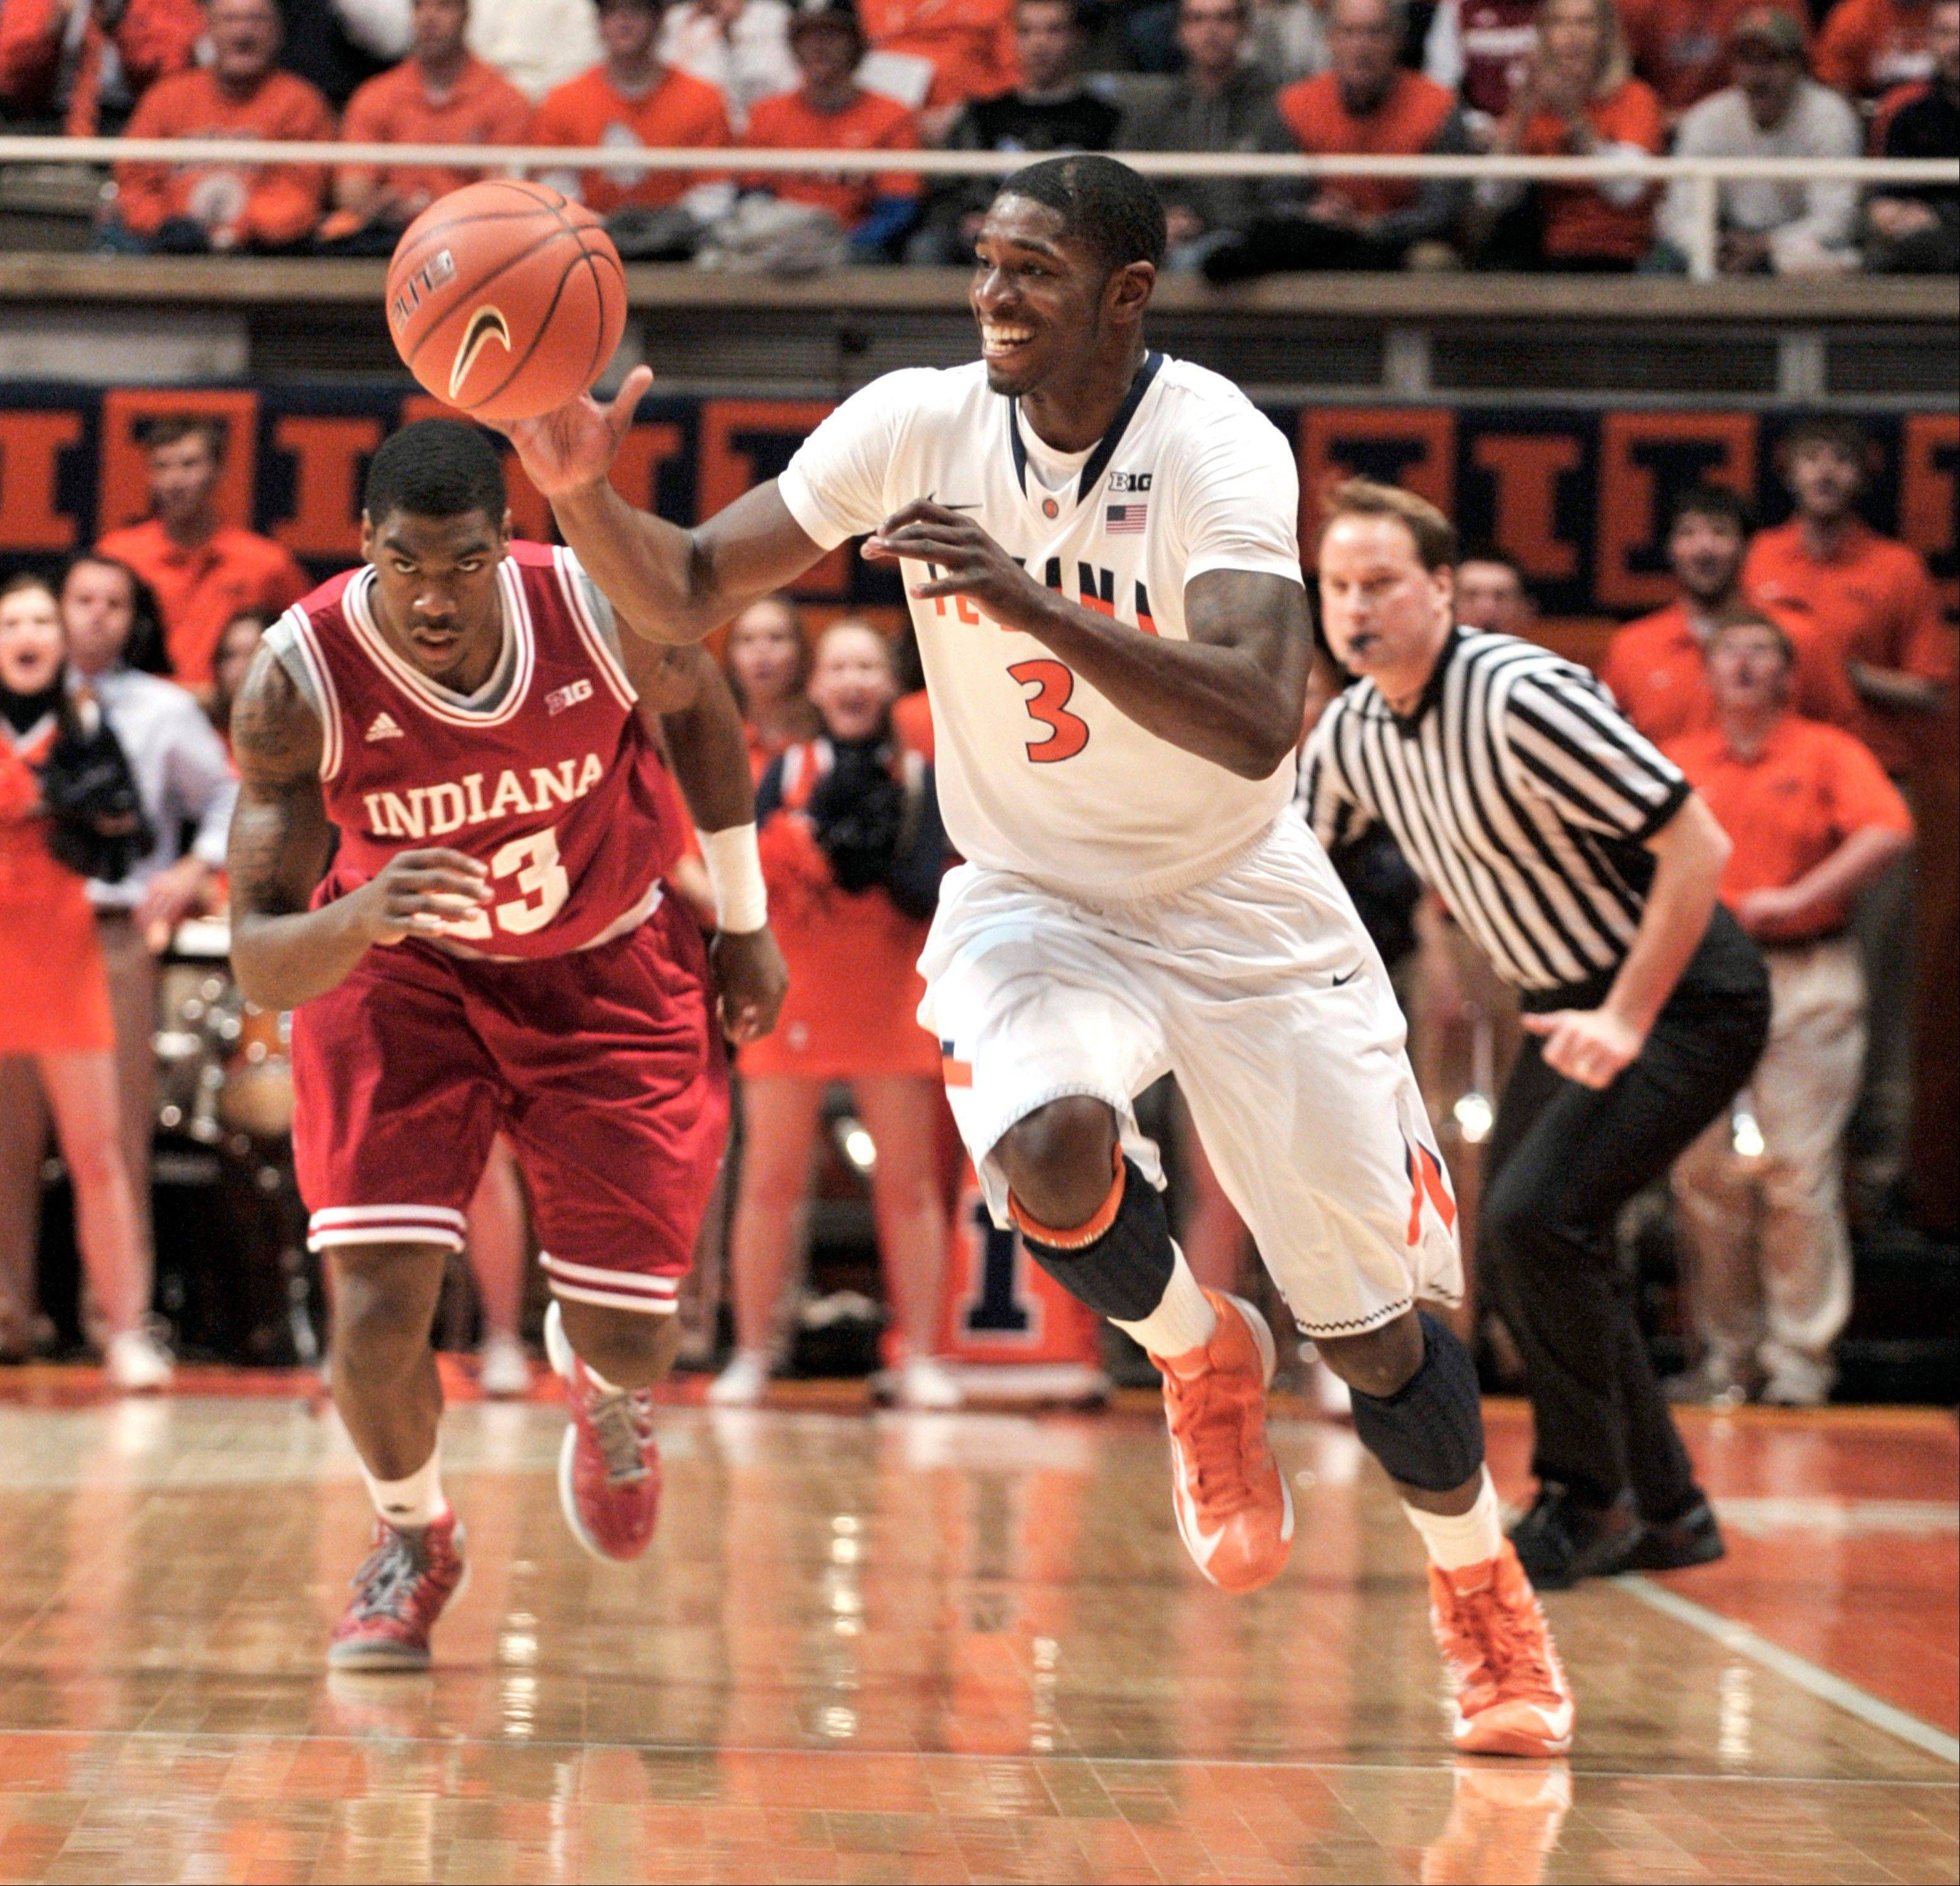 Illinois' Brandon Paul steals the ball in front of Indiana's Remy Abell on Thursday. Paul scored some critical free throws in the closing minutes to help beat No. 1 Indiana.